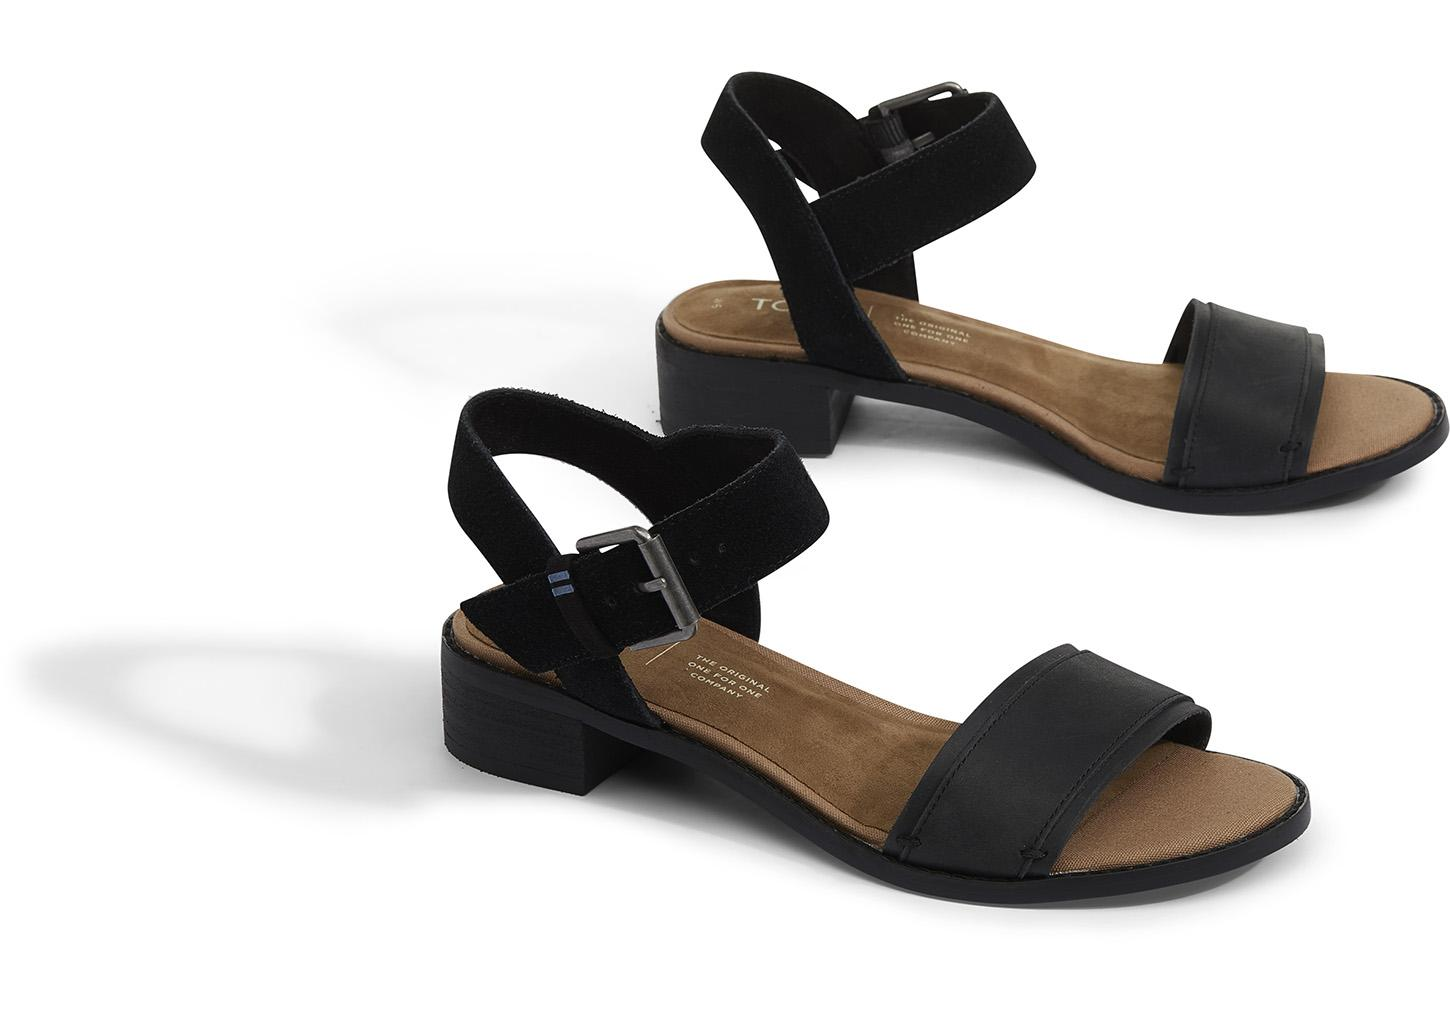 9cd1af45b1ba TOMS - Black Leather With Suede Women s Camilia Sandals - Lyst. View  fullscreen